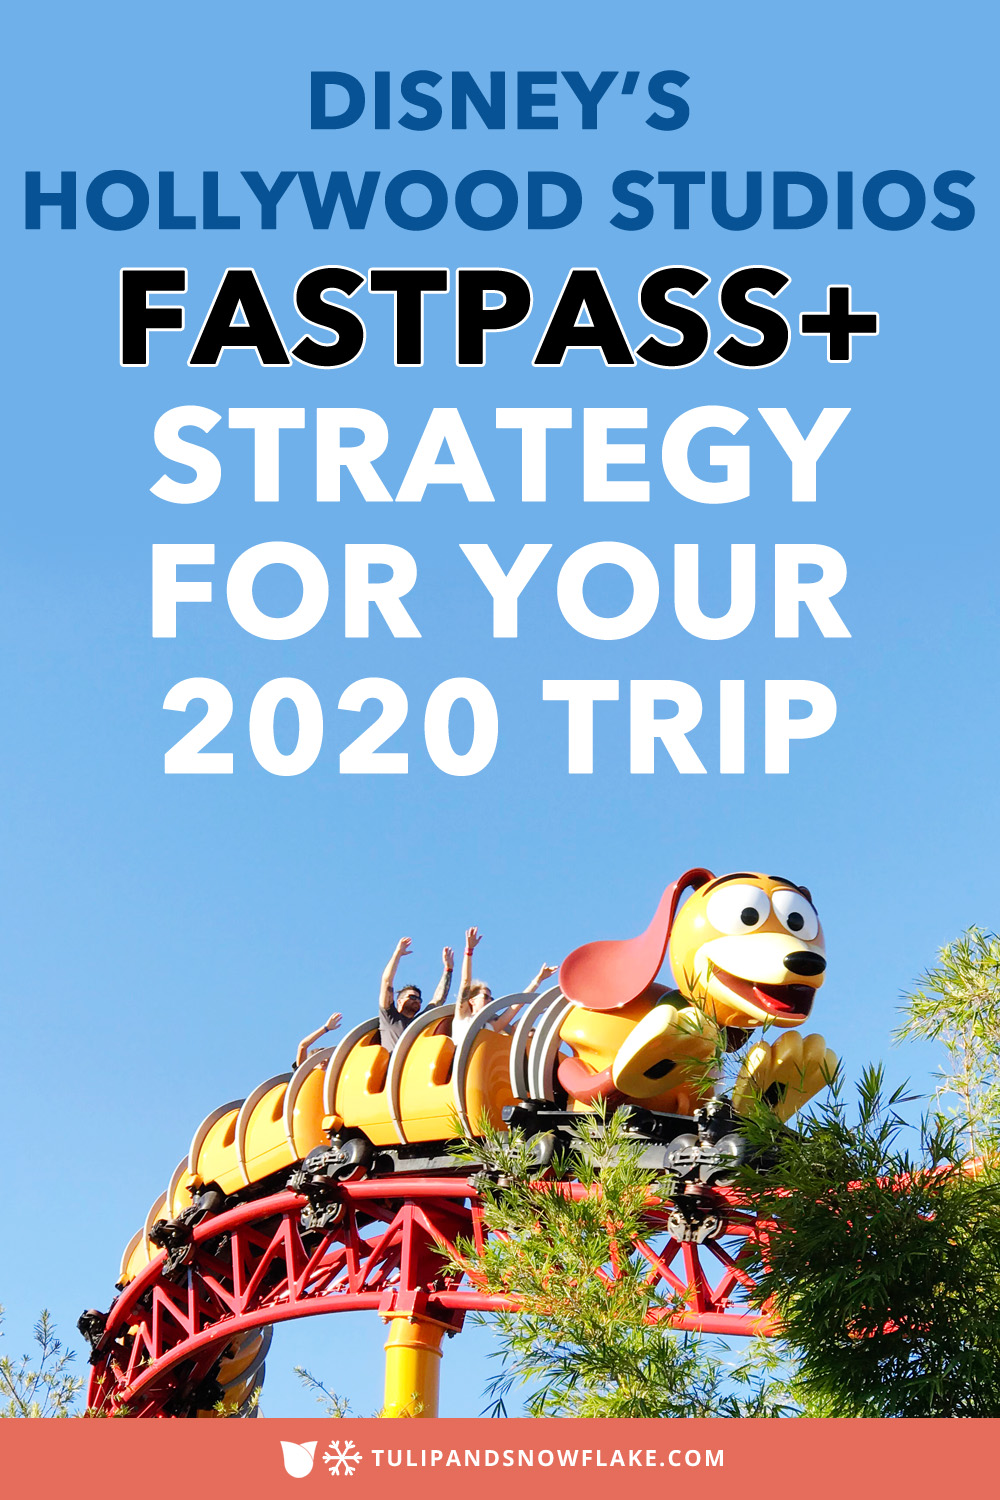 Hollywood Studios FastPass+ strategy for 2020